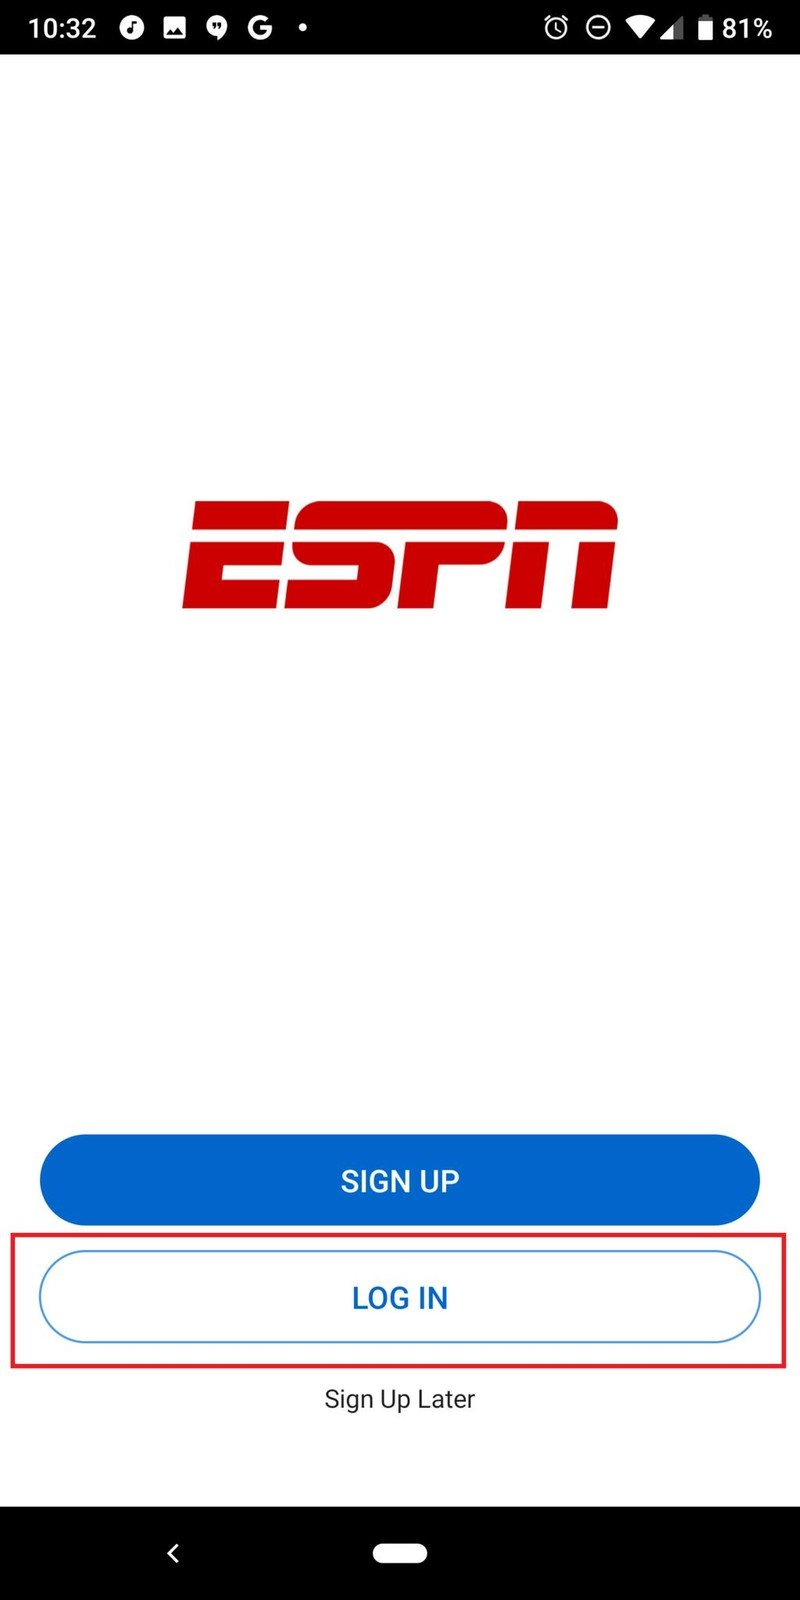 espn_app_android_splash_login_sign_up-12